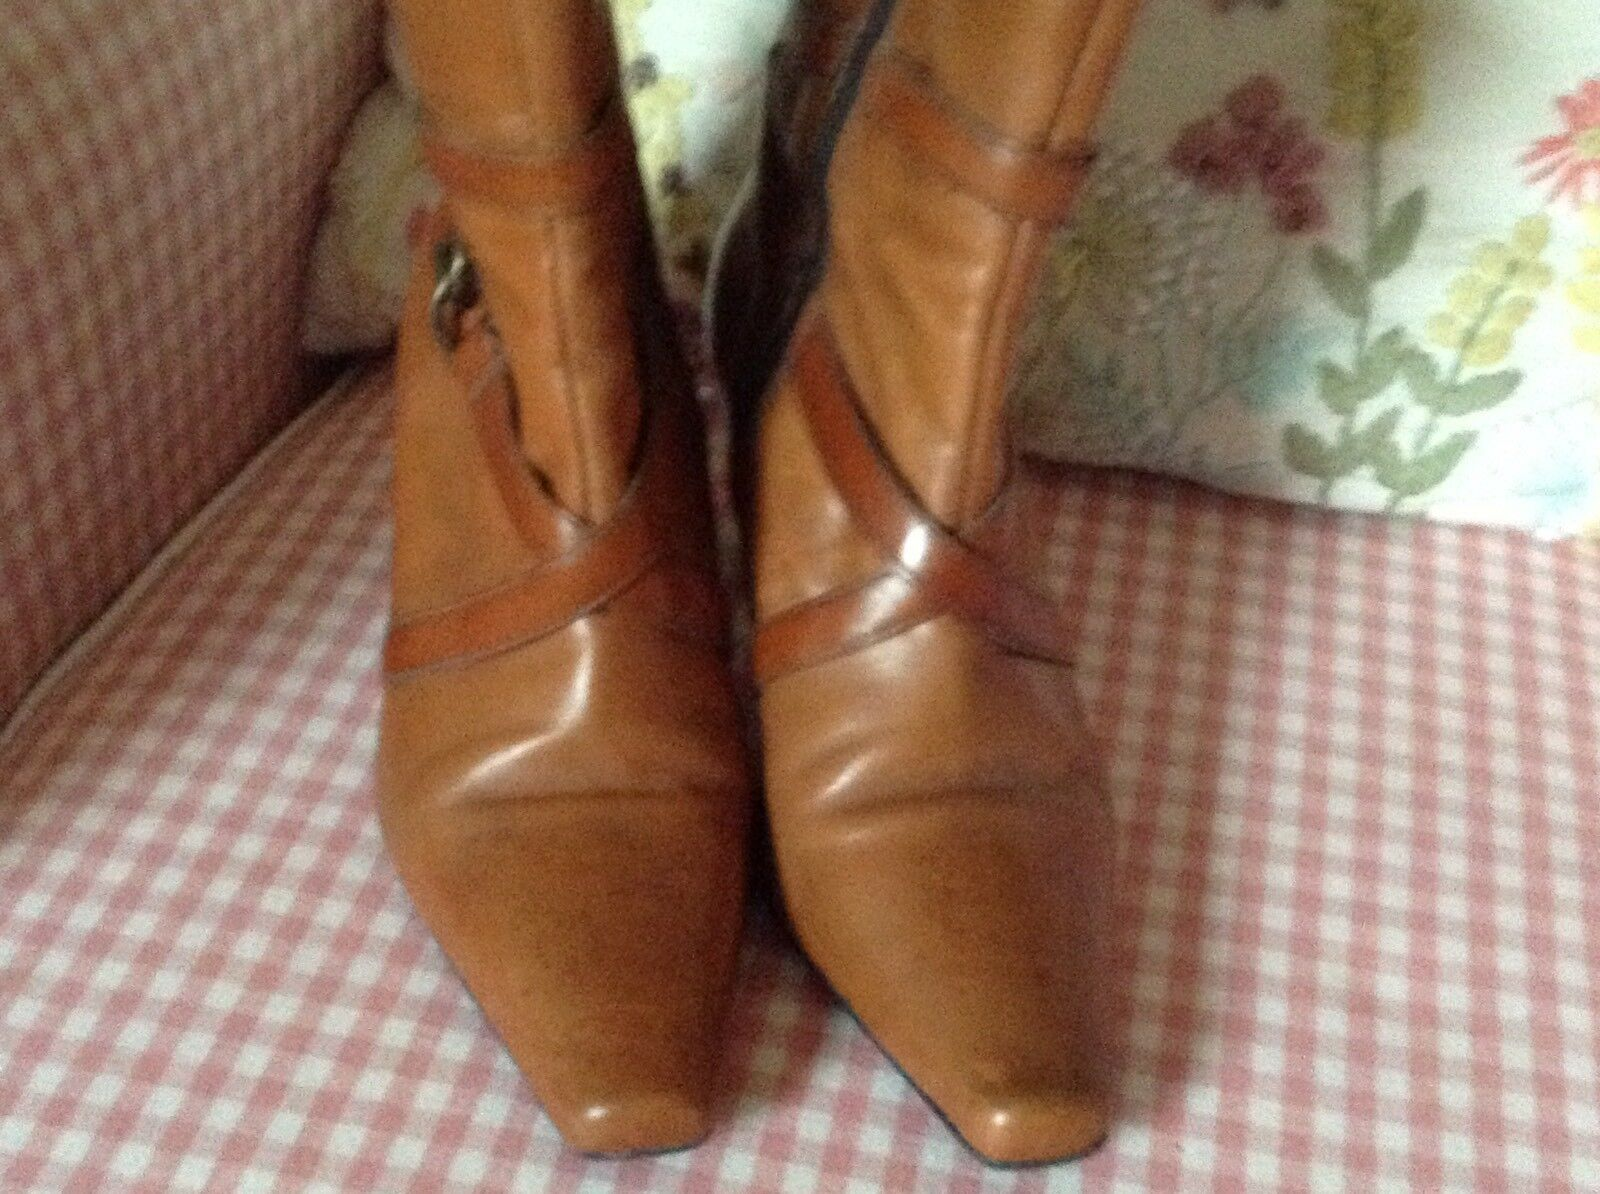 CLARKS TAN LEATHER ZIP UP HIGH HEEL ANKLE BOOTS Fab Condition